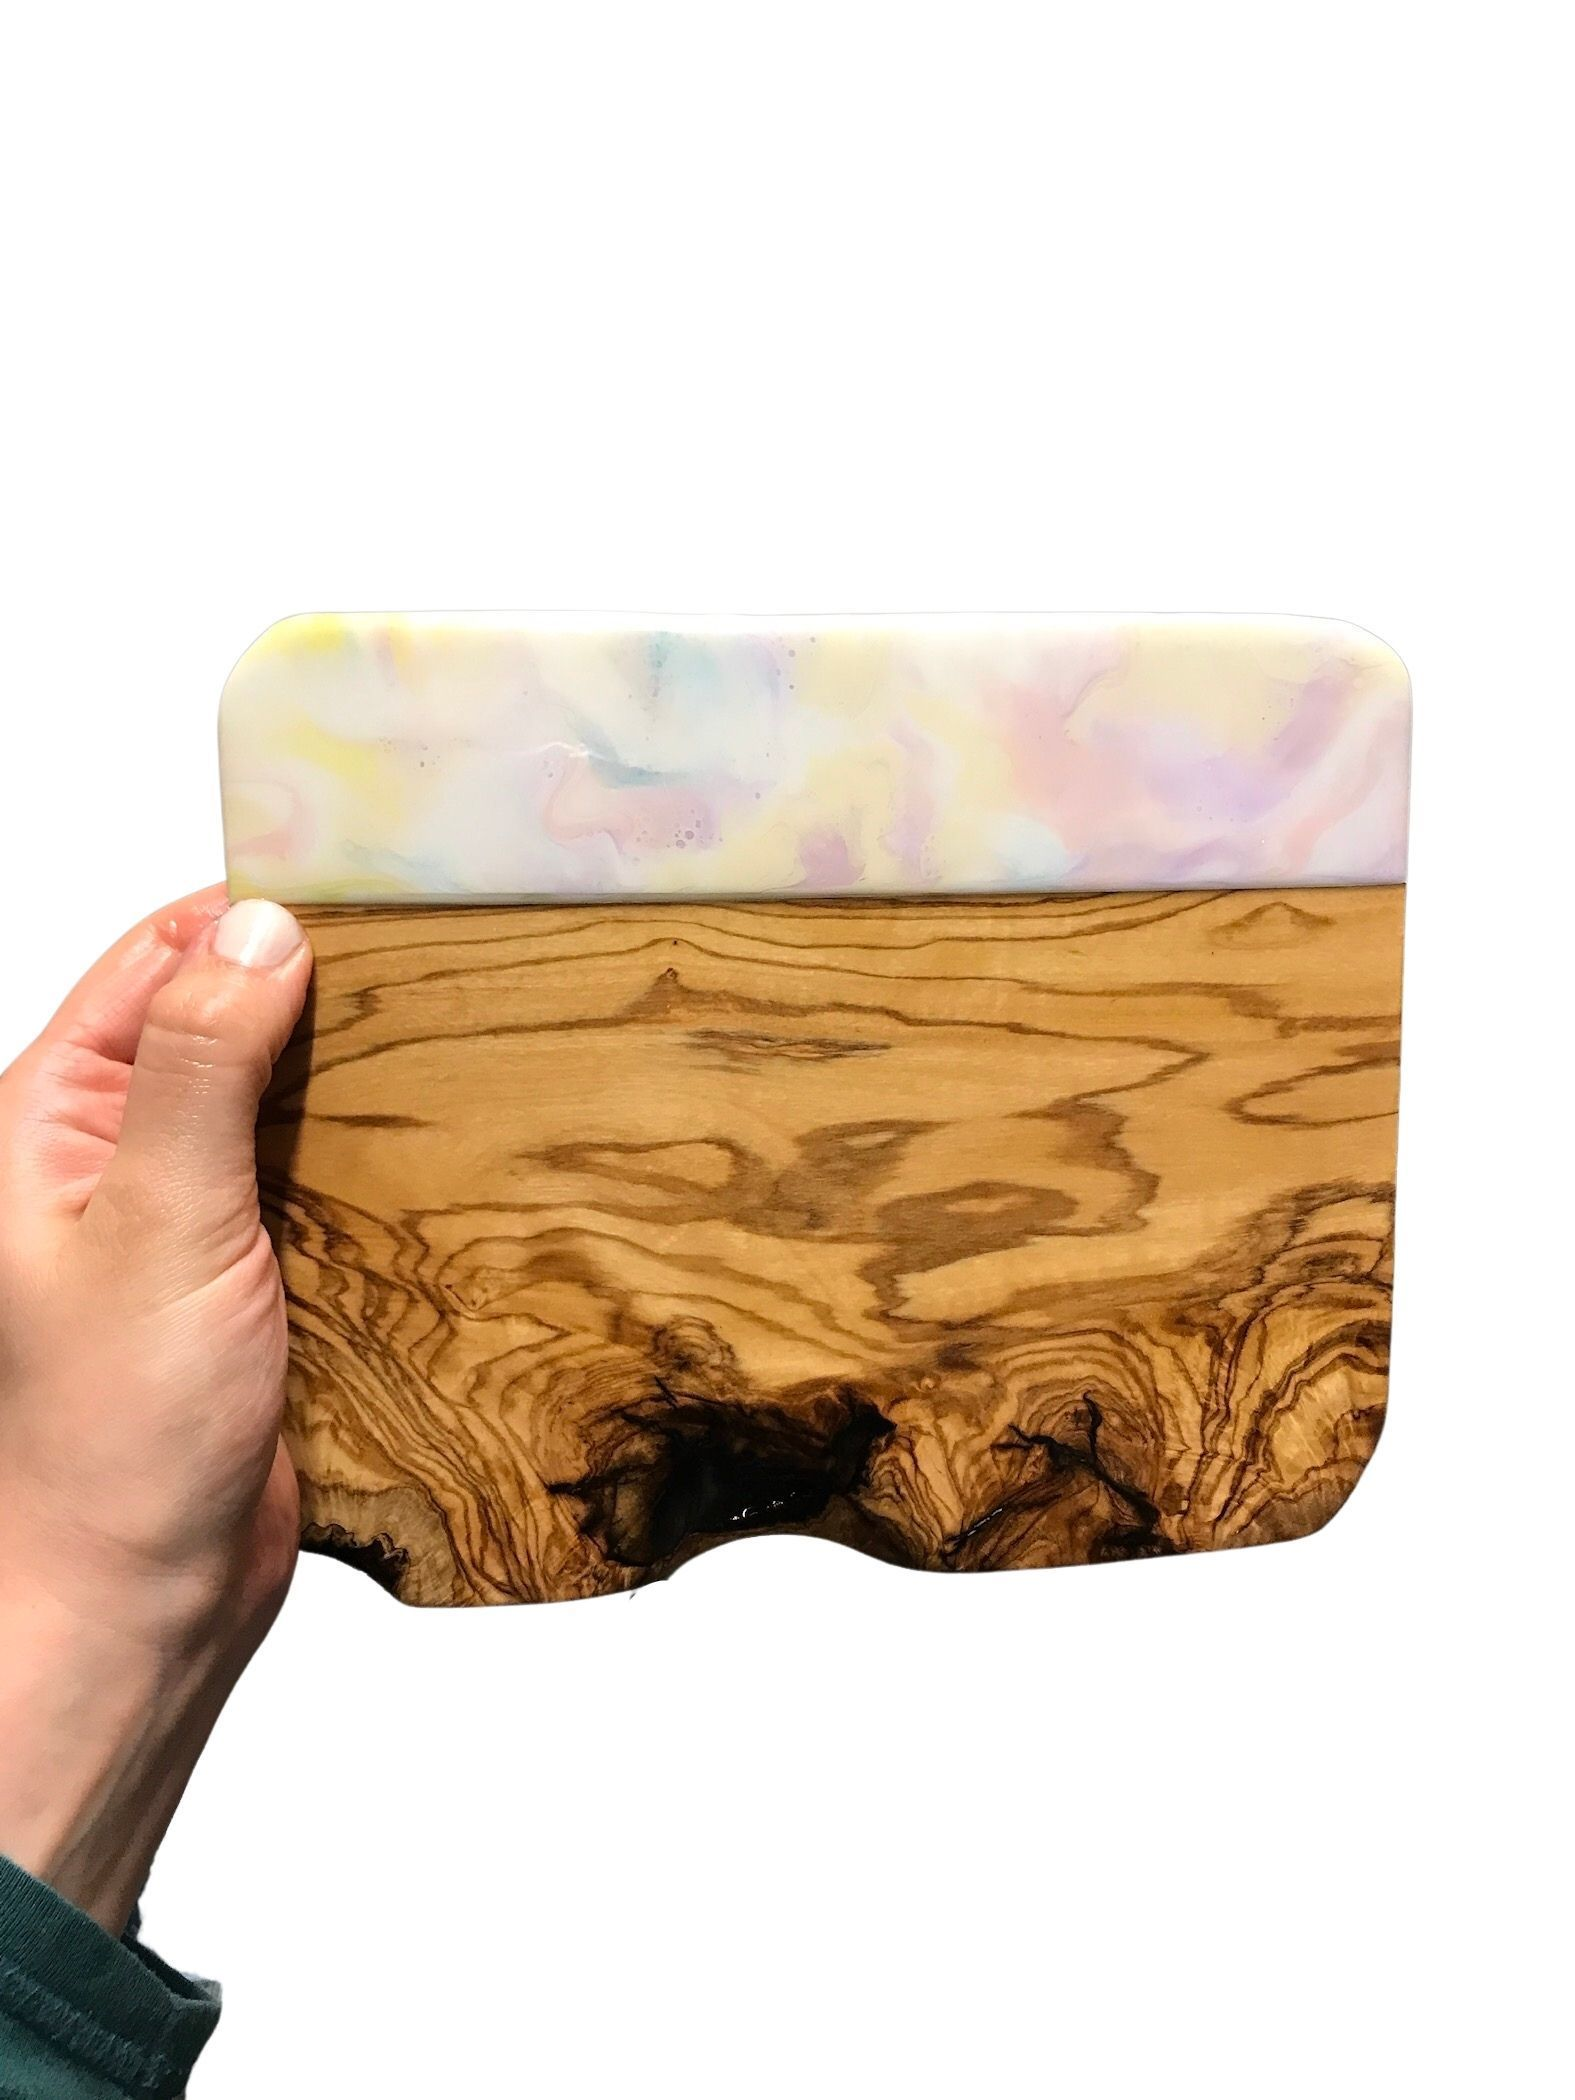 Tapas Board with Pastel Resin Art 20cm - Pastels Home Decor